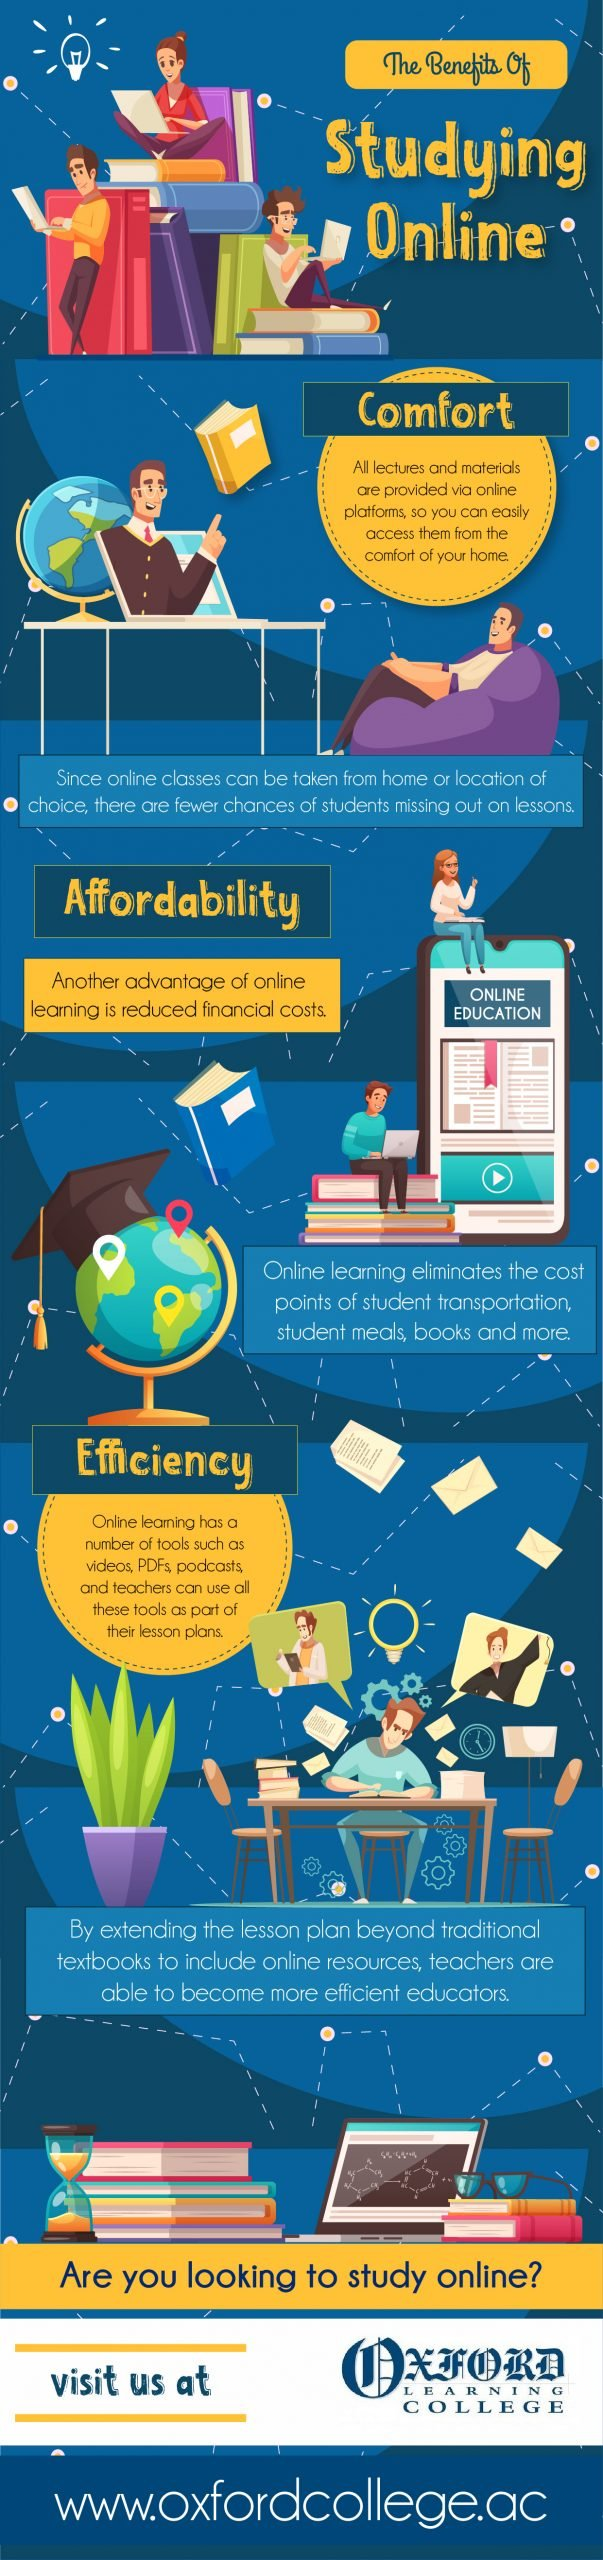 The Benefits of Studying Online